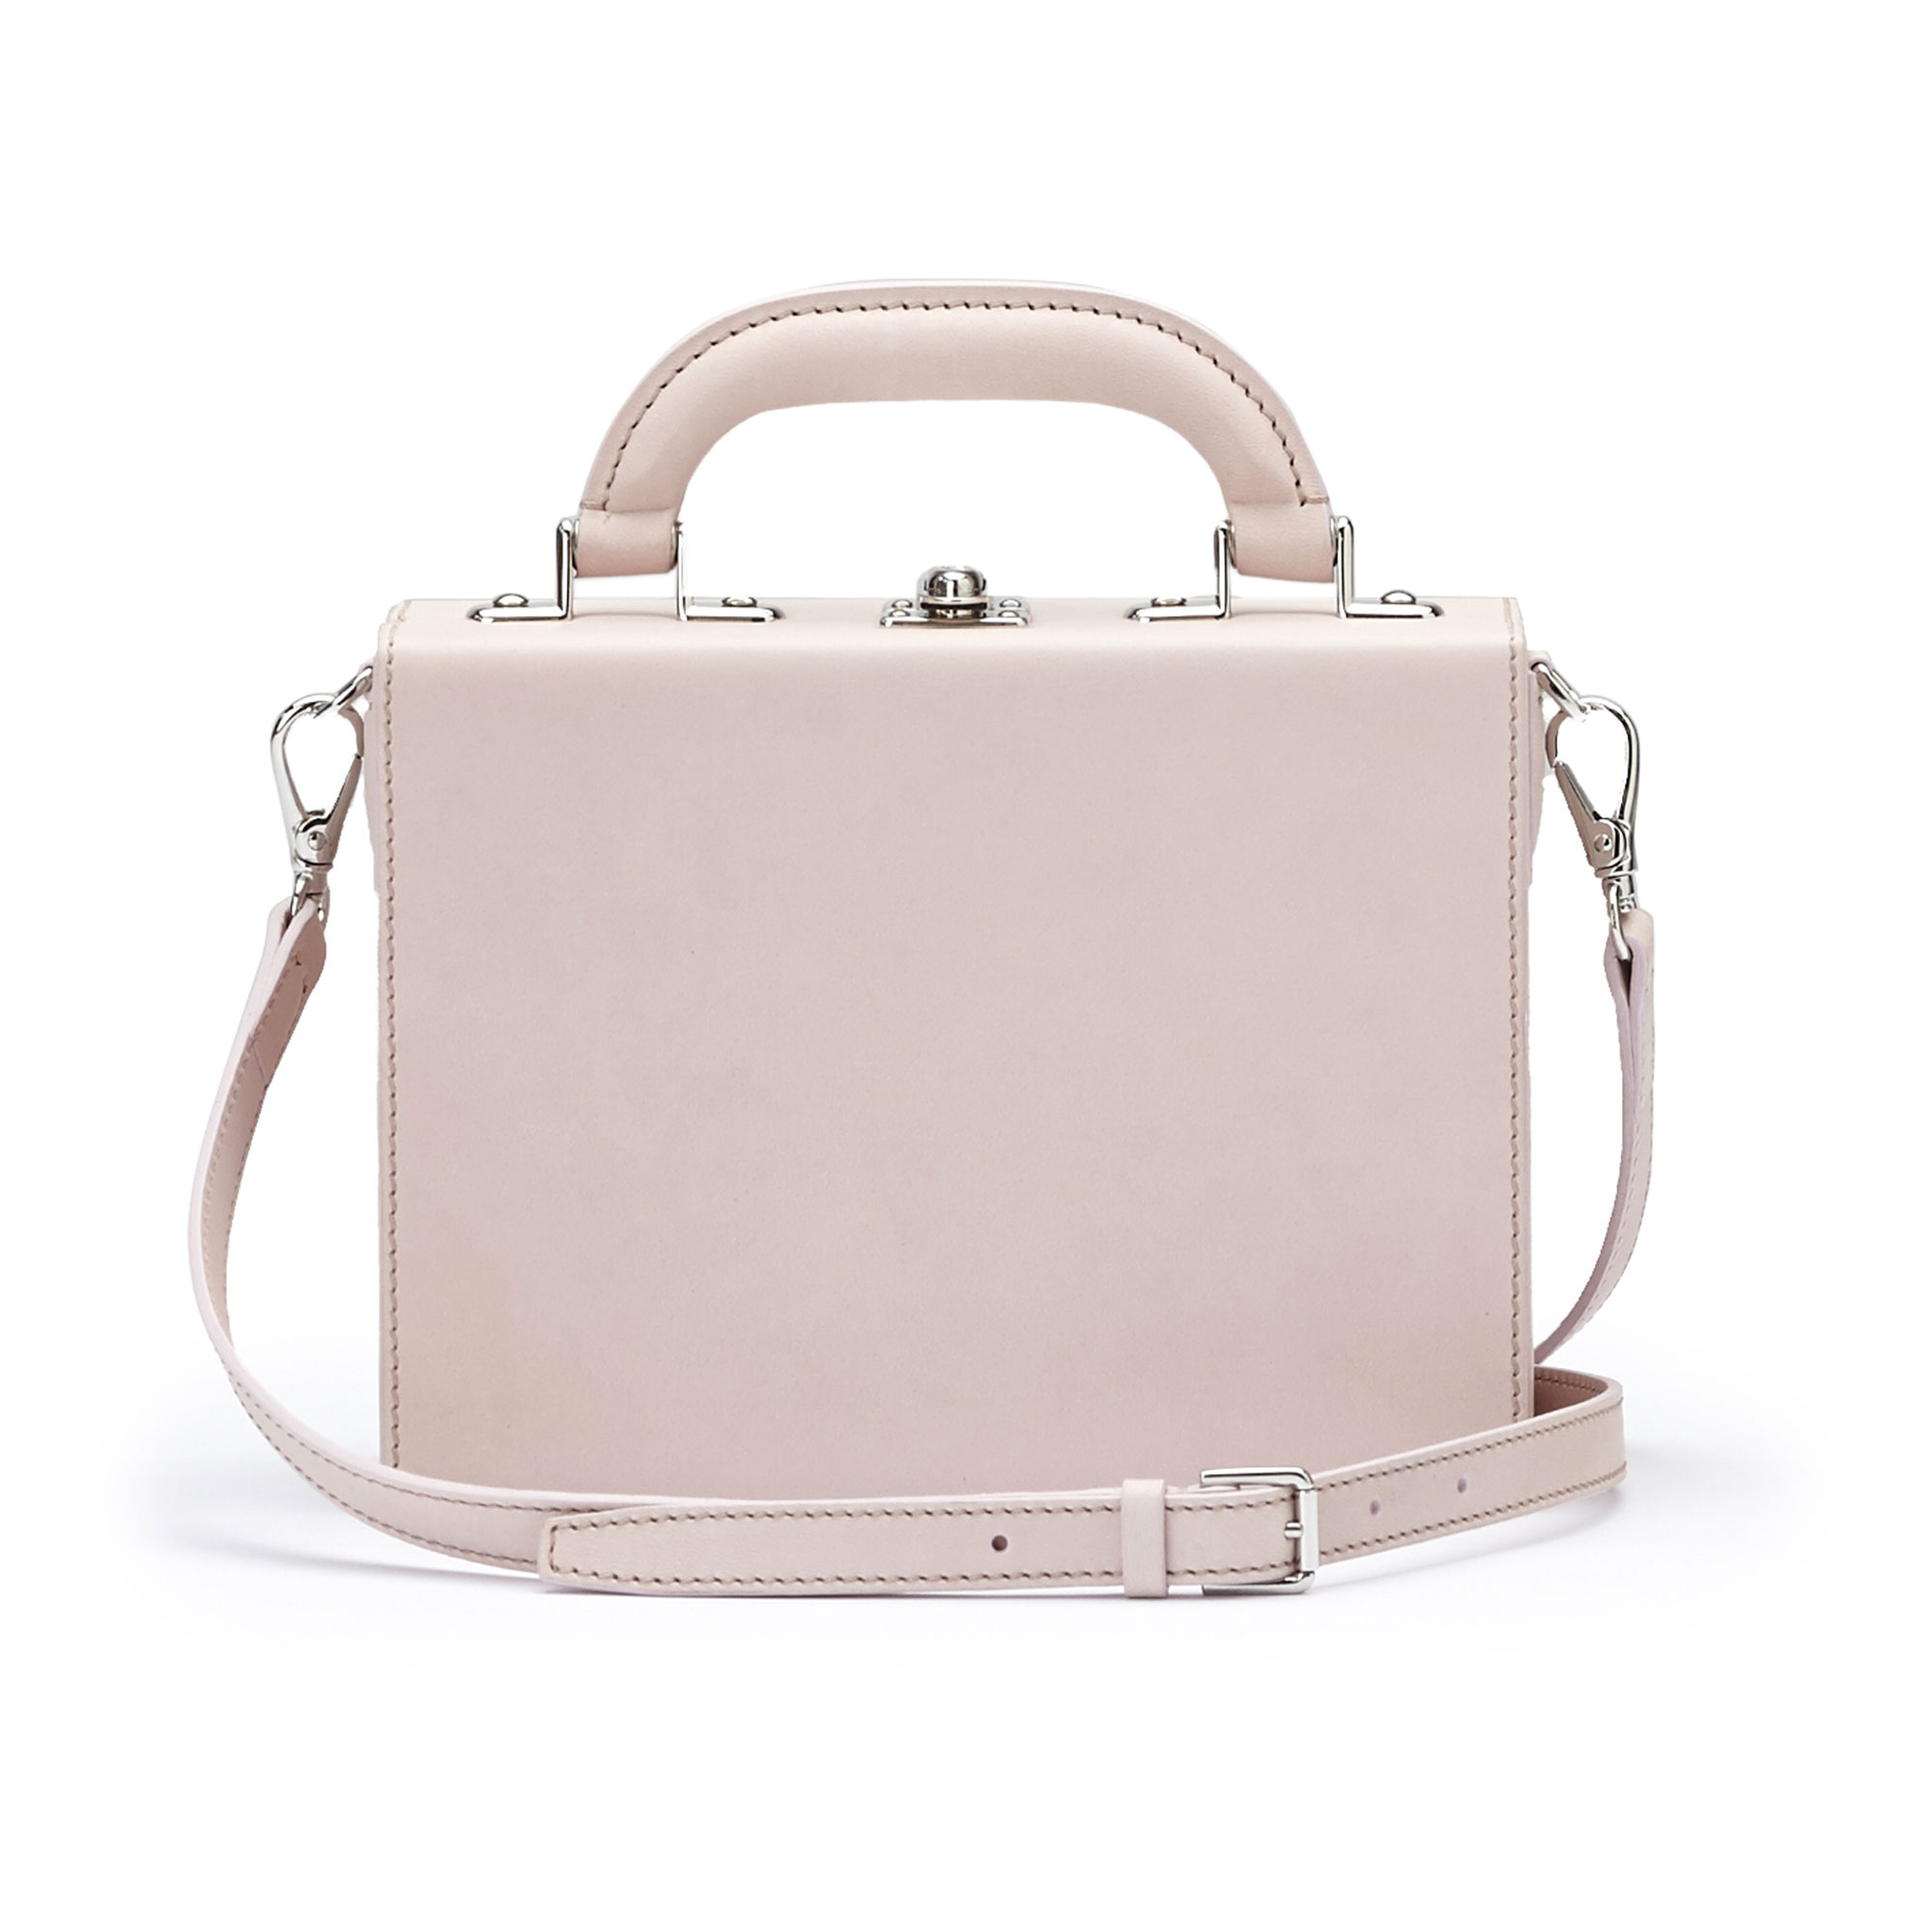 The pink french calf Mini Squared Bertoncina bag by Bertoni 1949 03